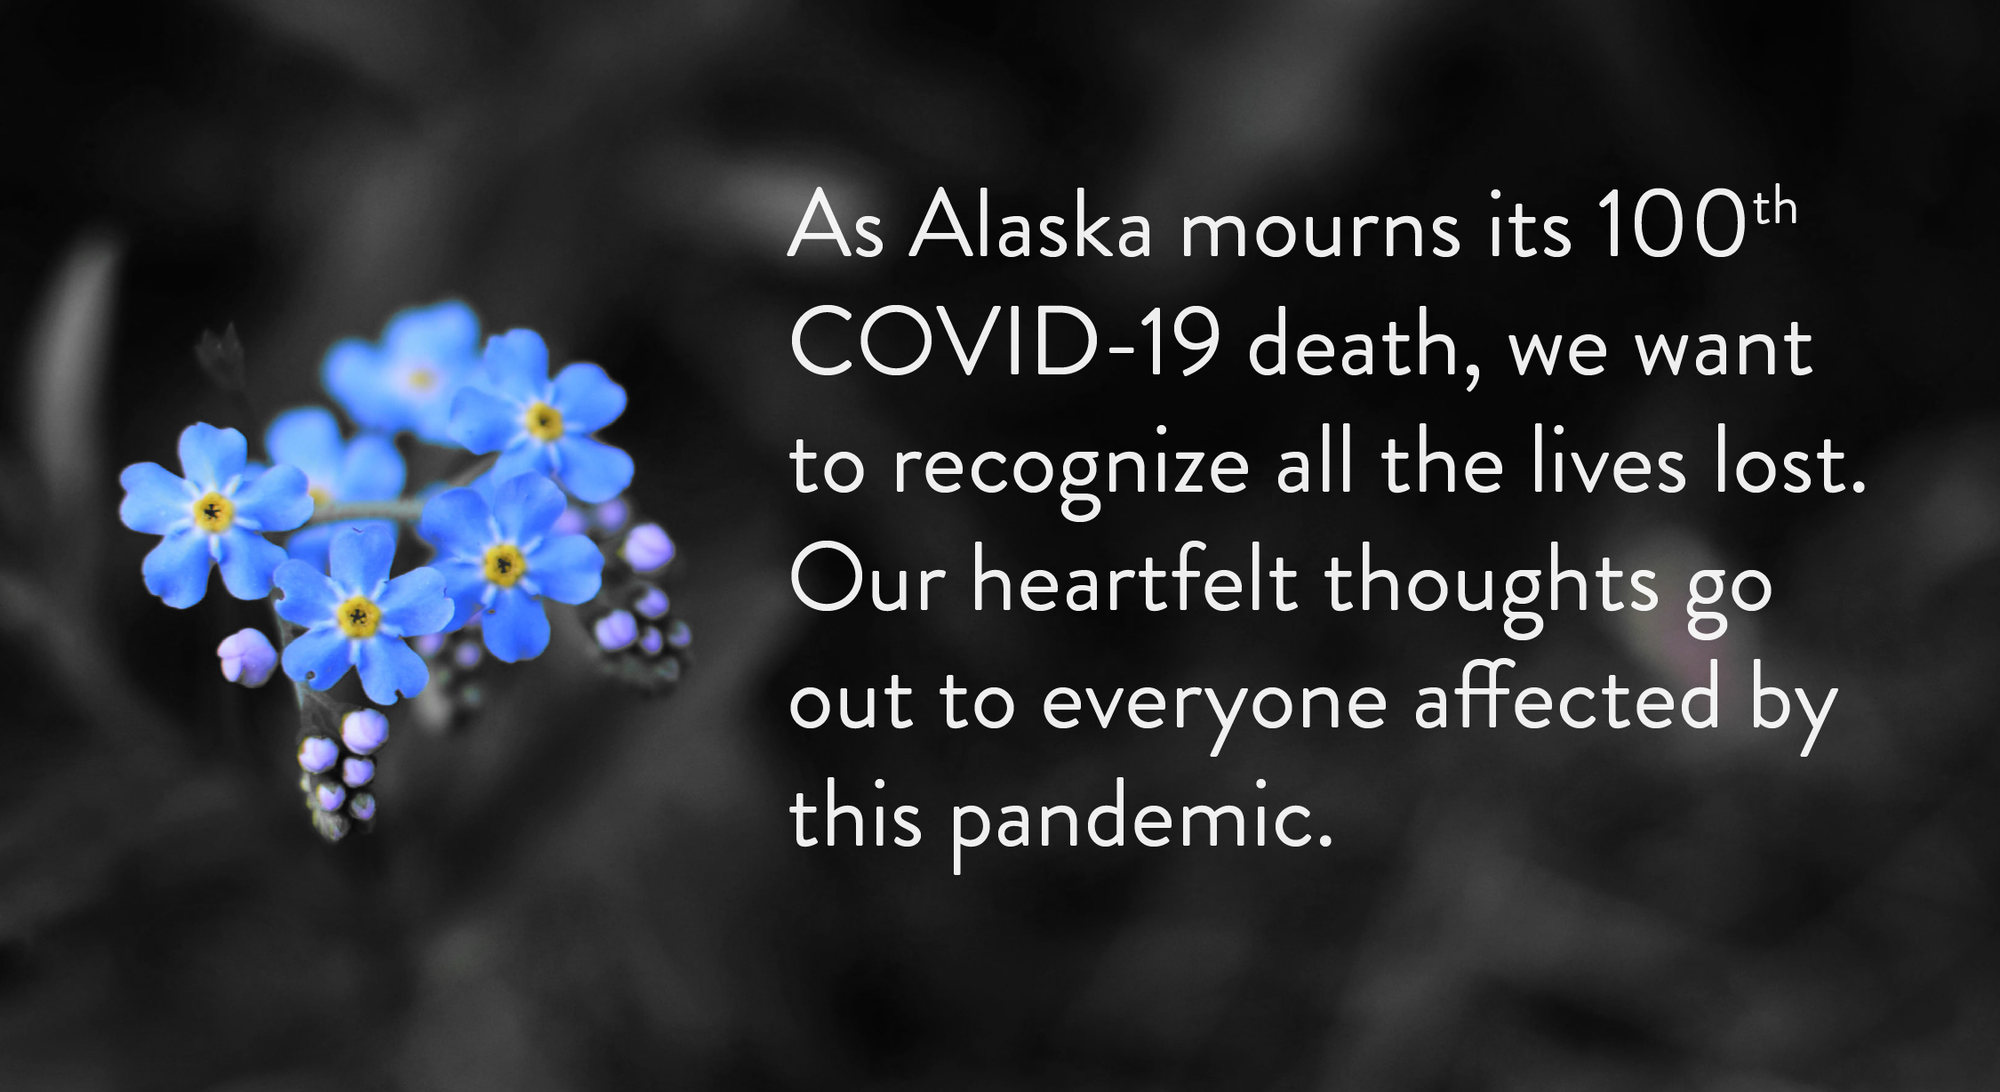 Acknowledgement of 100 deaths from COVID-19